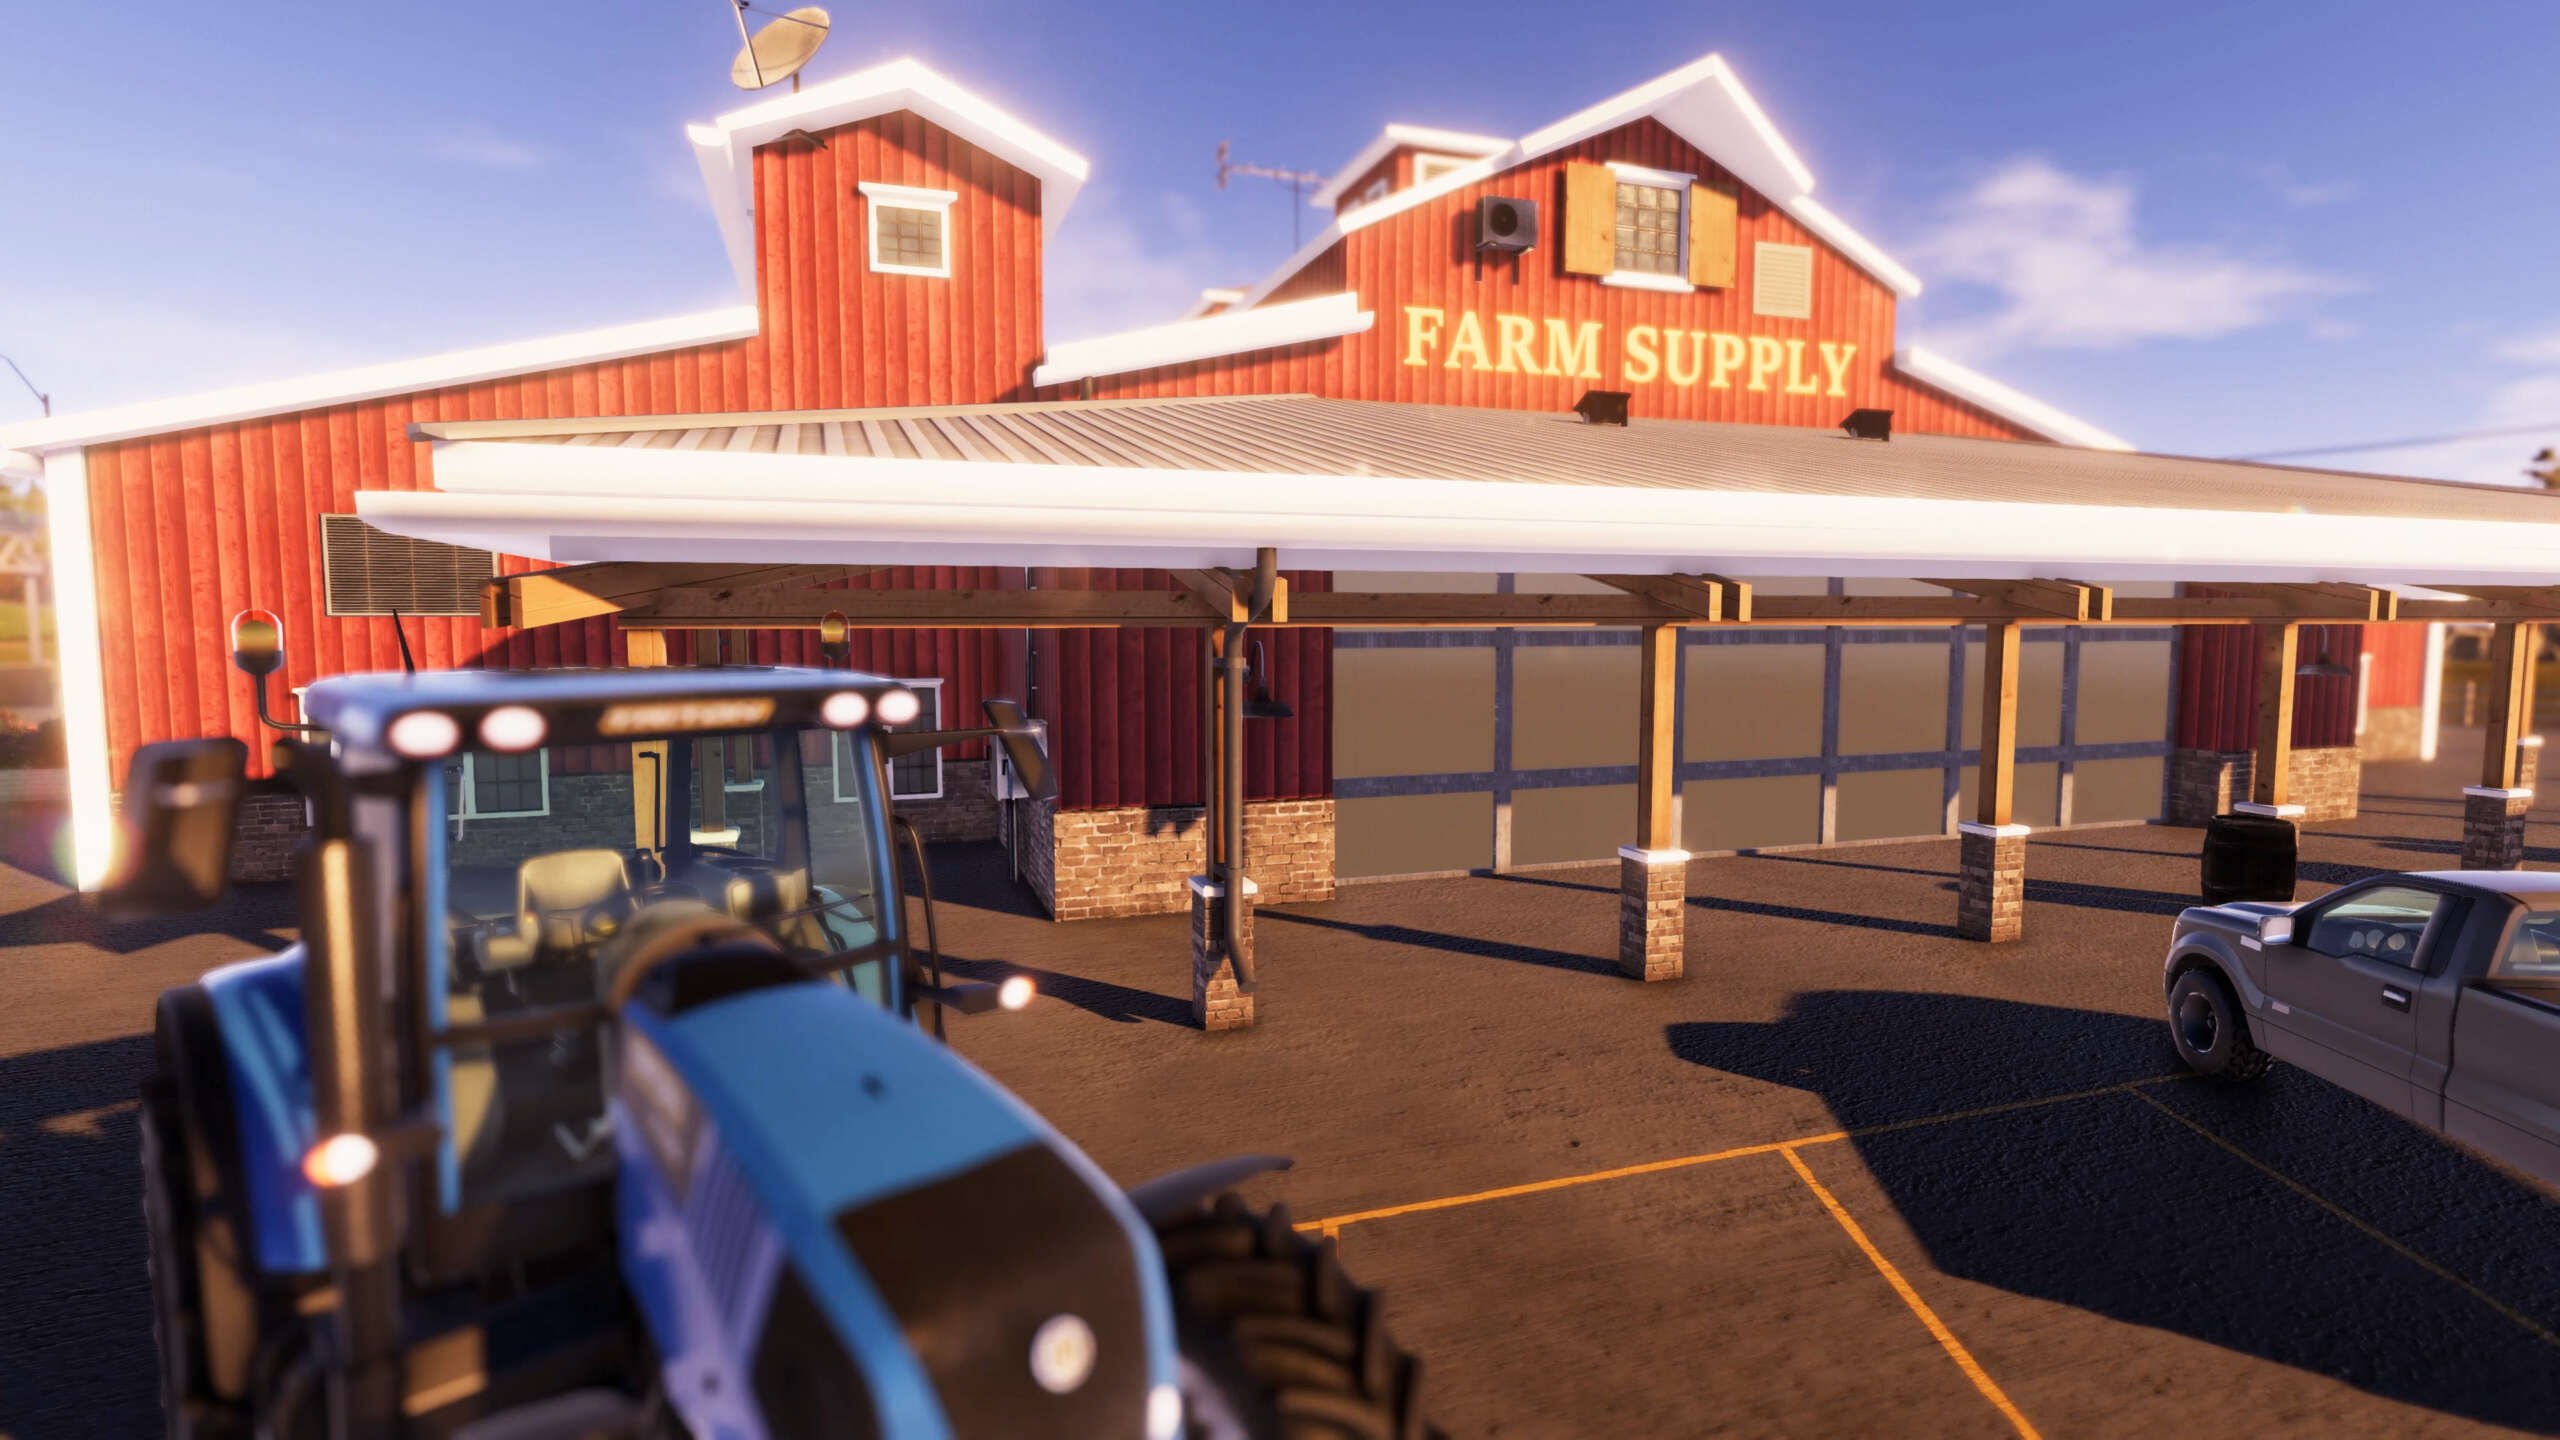 Real Farm – Gold Edition Will Come To PC, PlayStation 4, And Xbox One Fans Bringing An Enriching Virtual Farming Enviroment